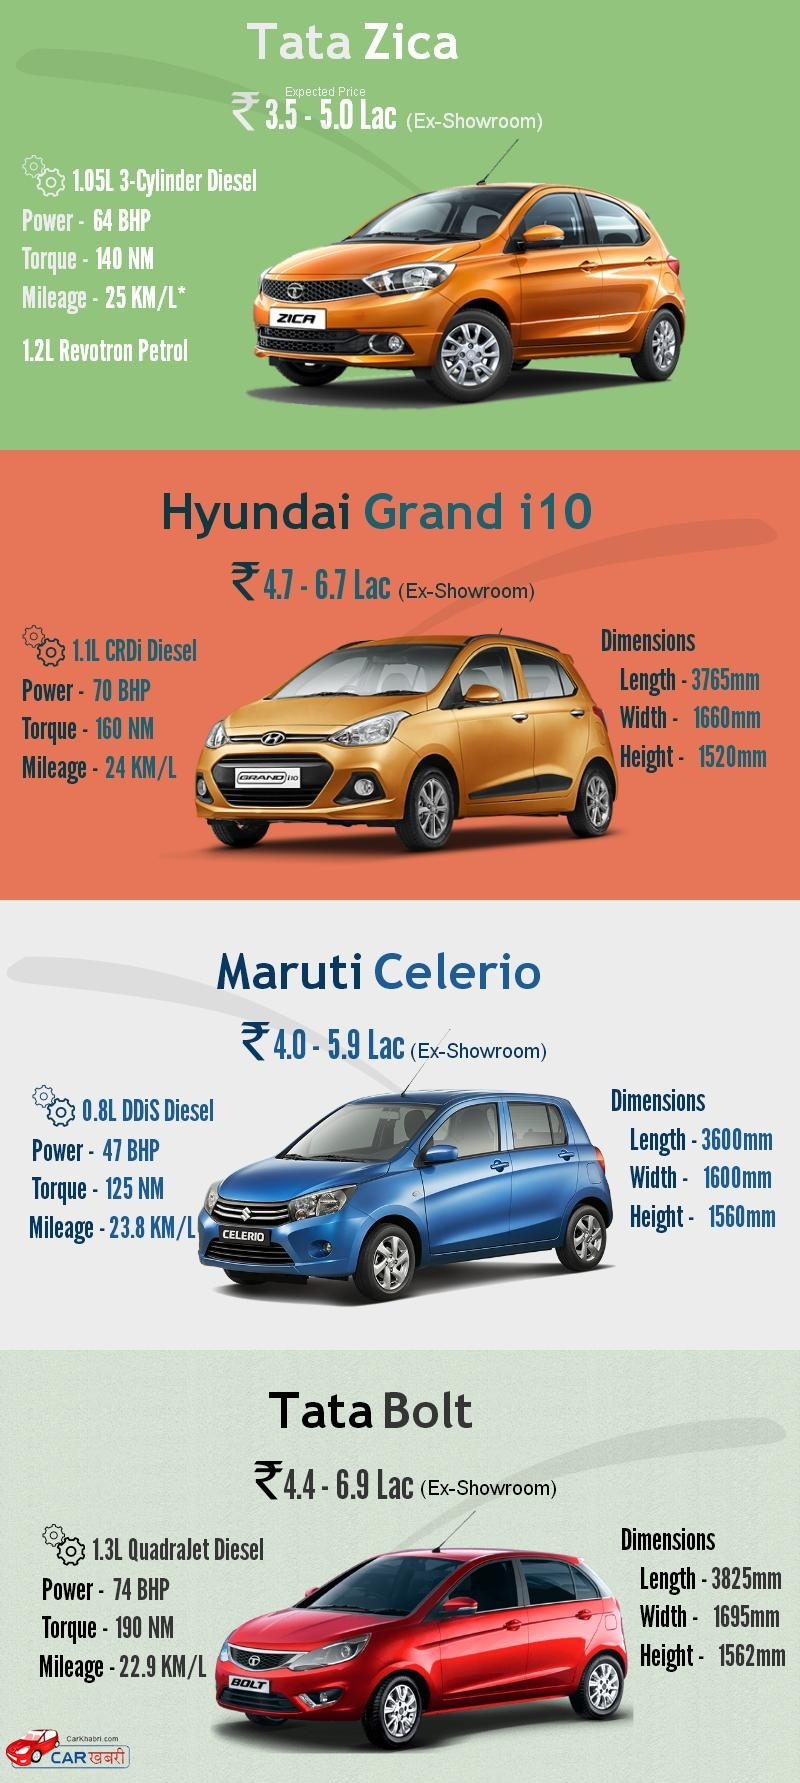 Comparison : Tata Zica vs Celerio vs Grand i10 vs Bolt